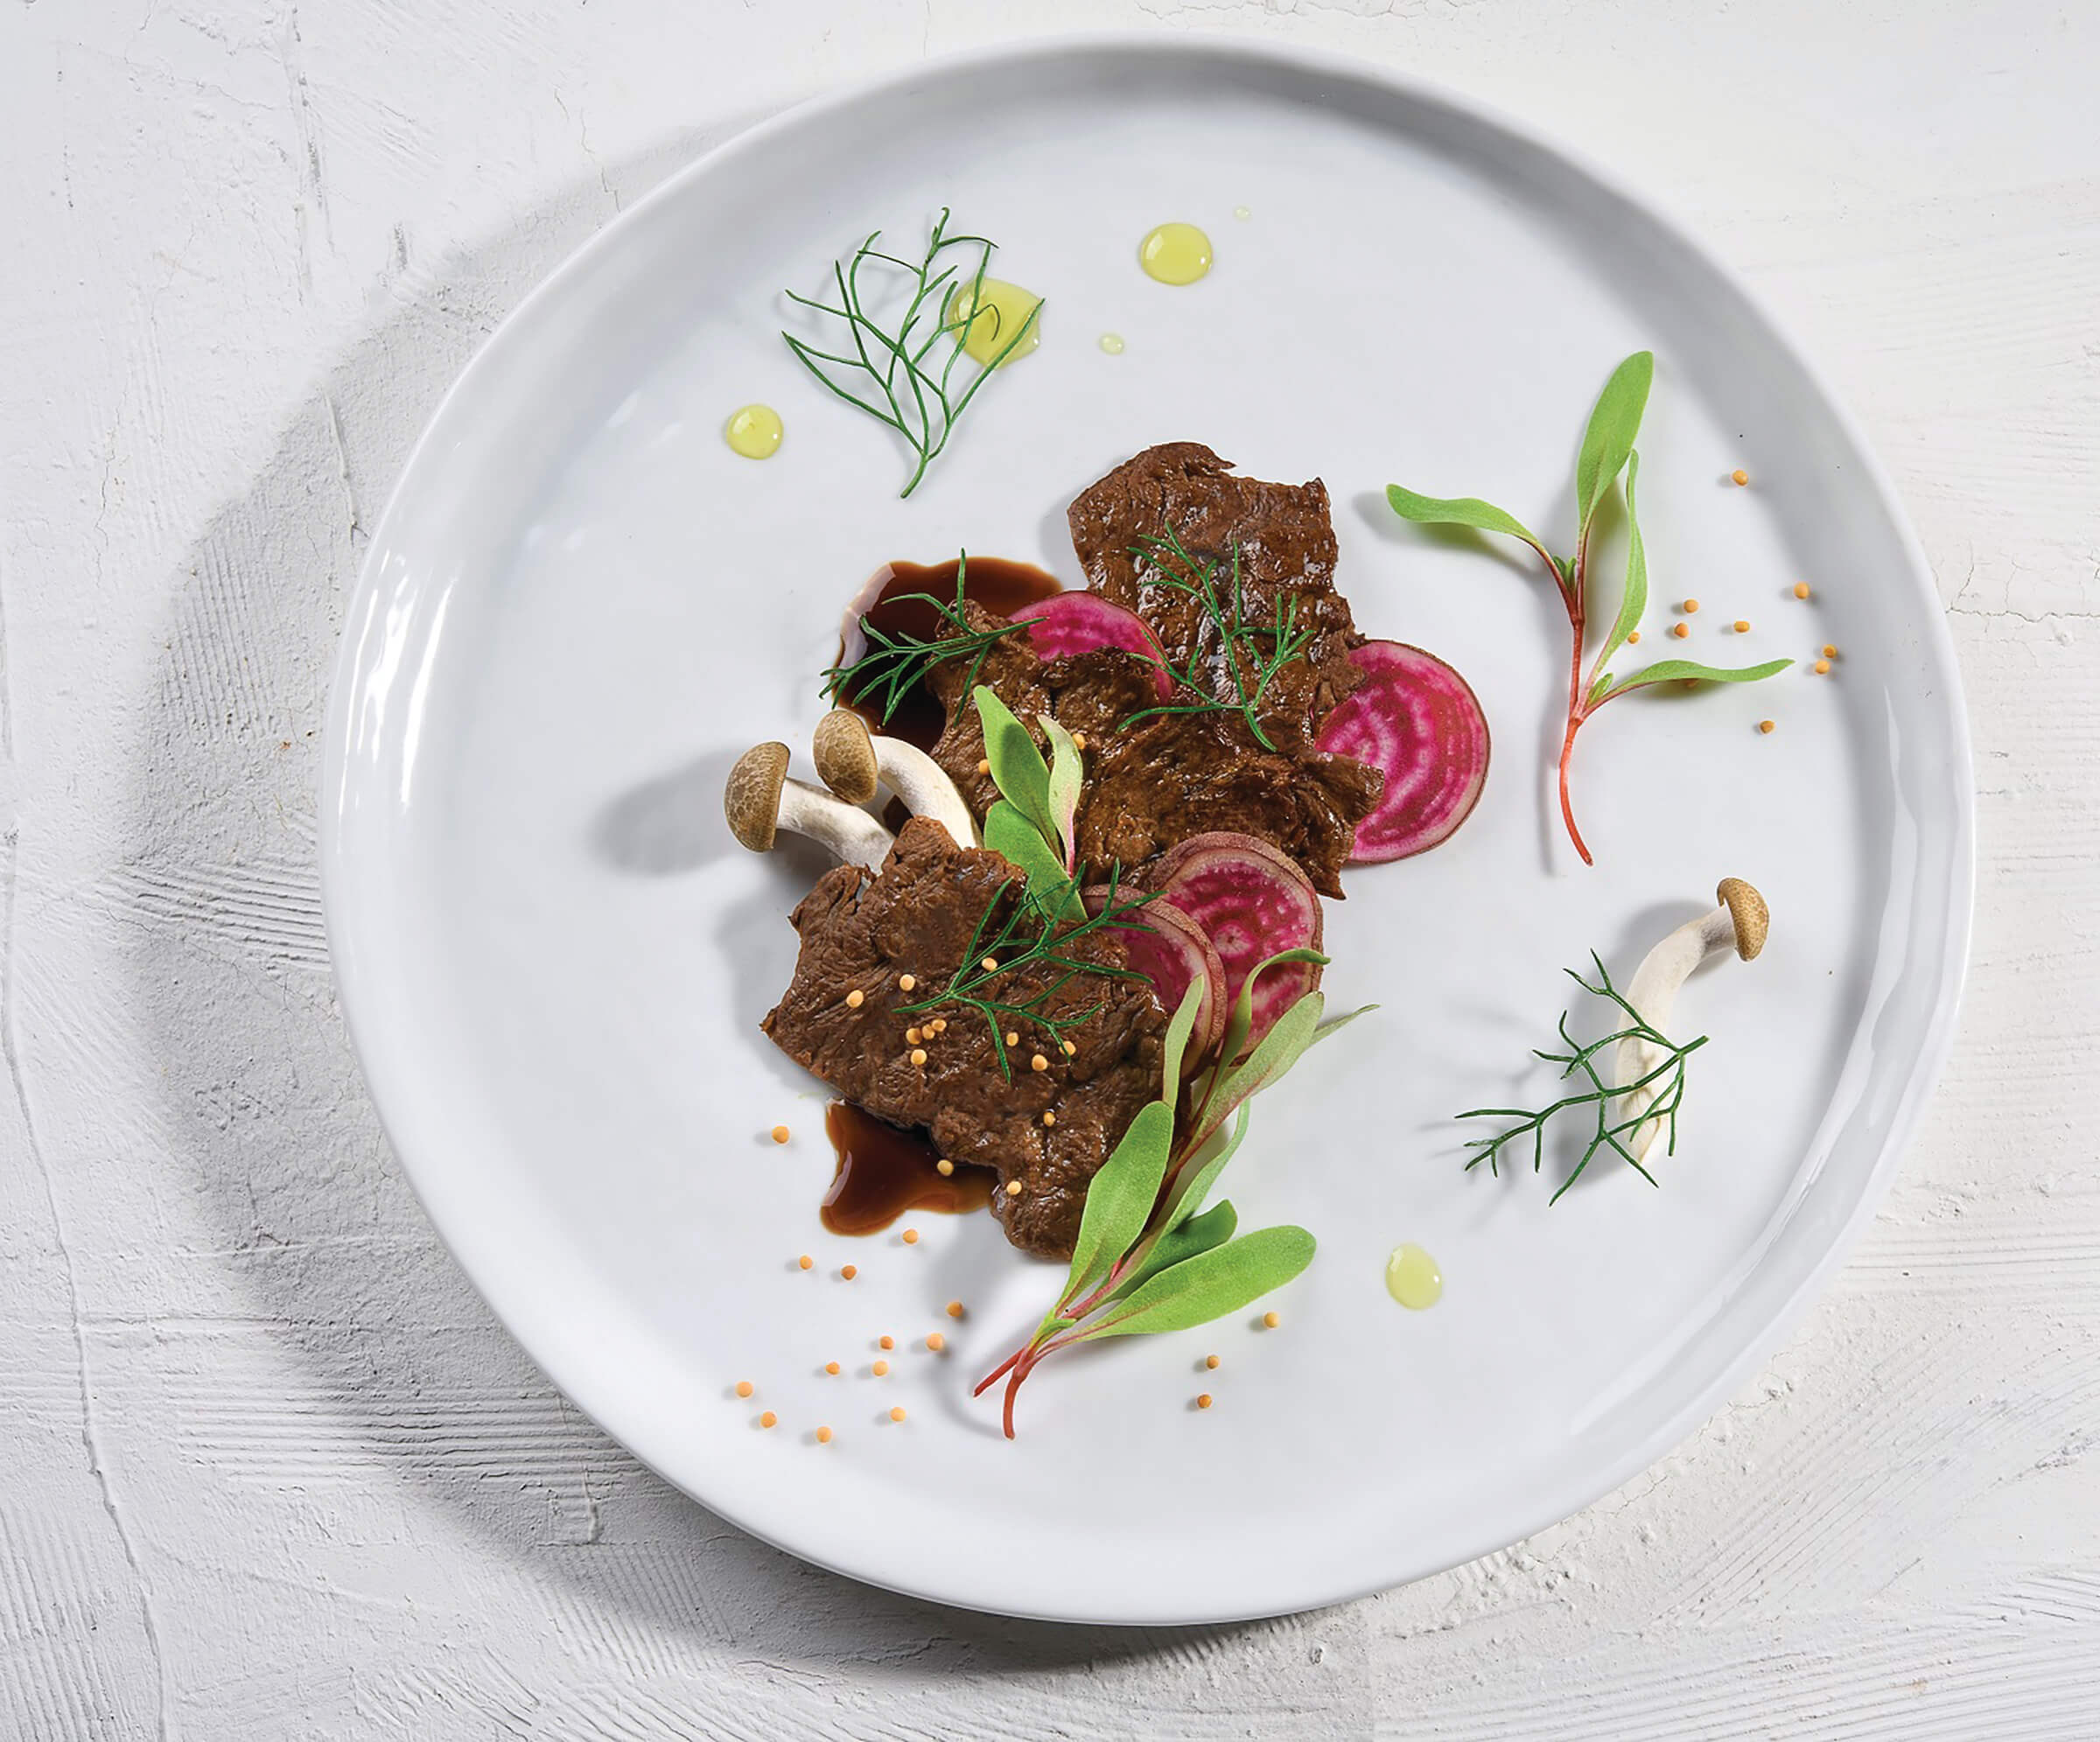 Cultivated meat plated on a white dish